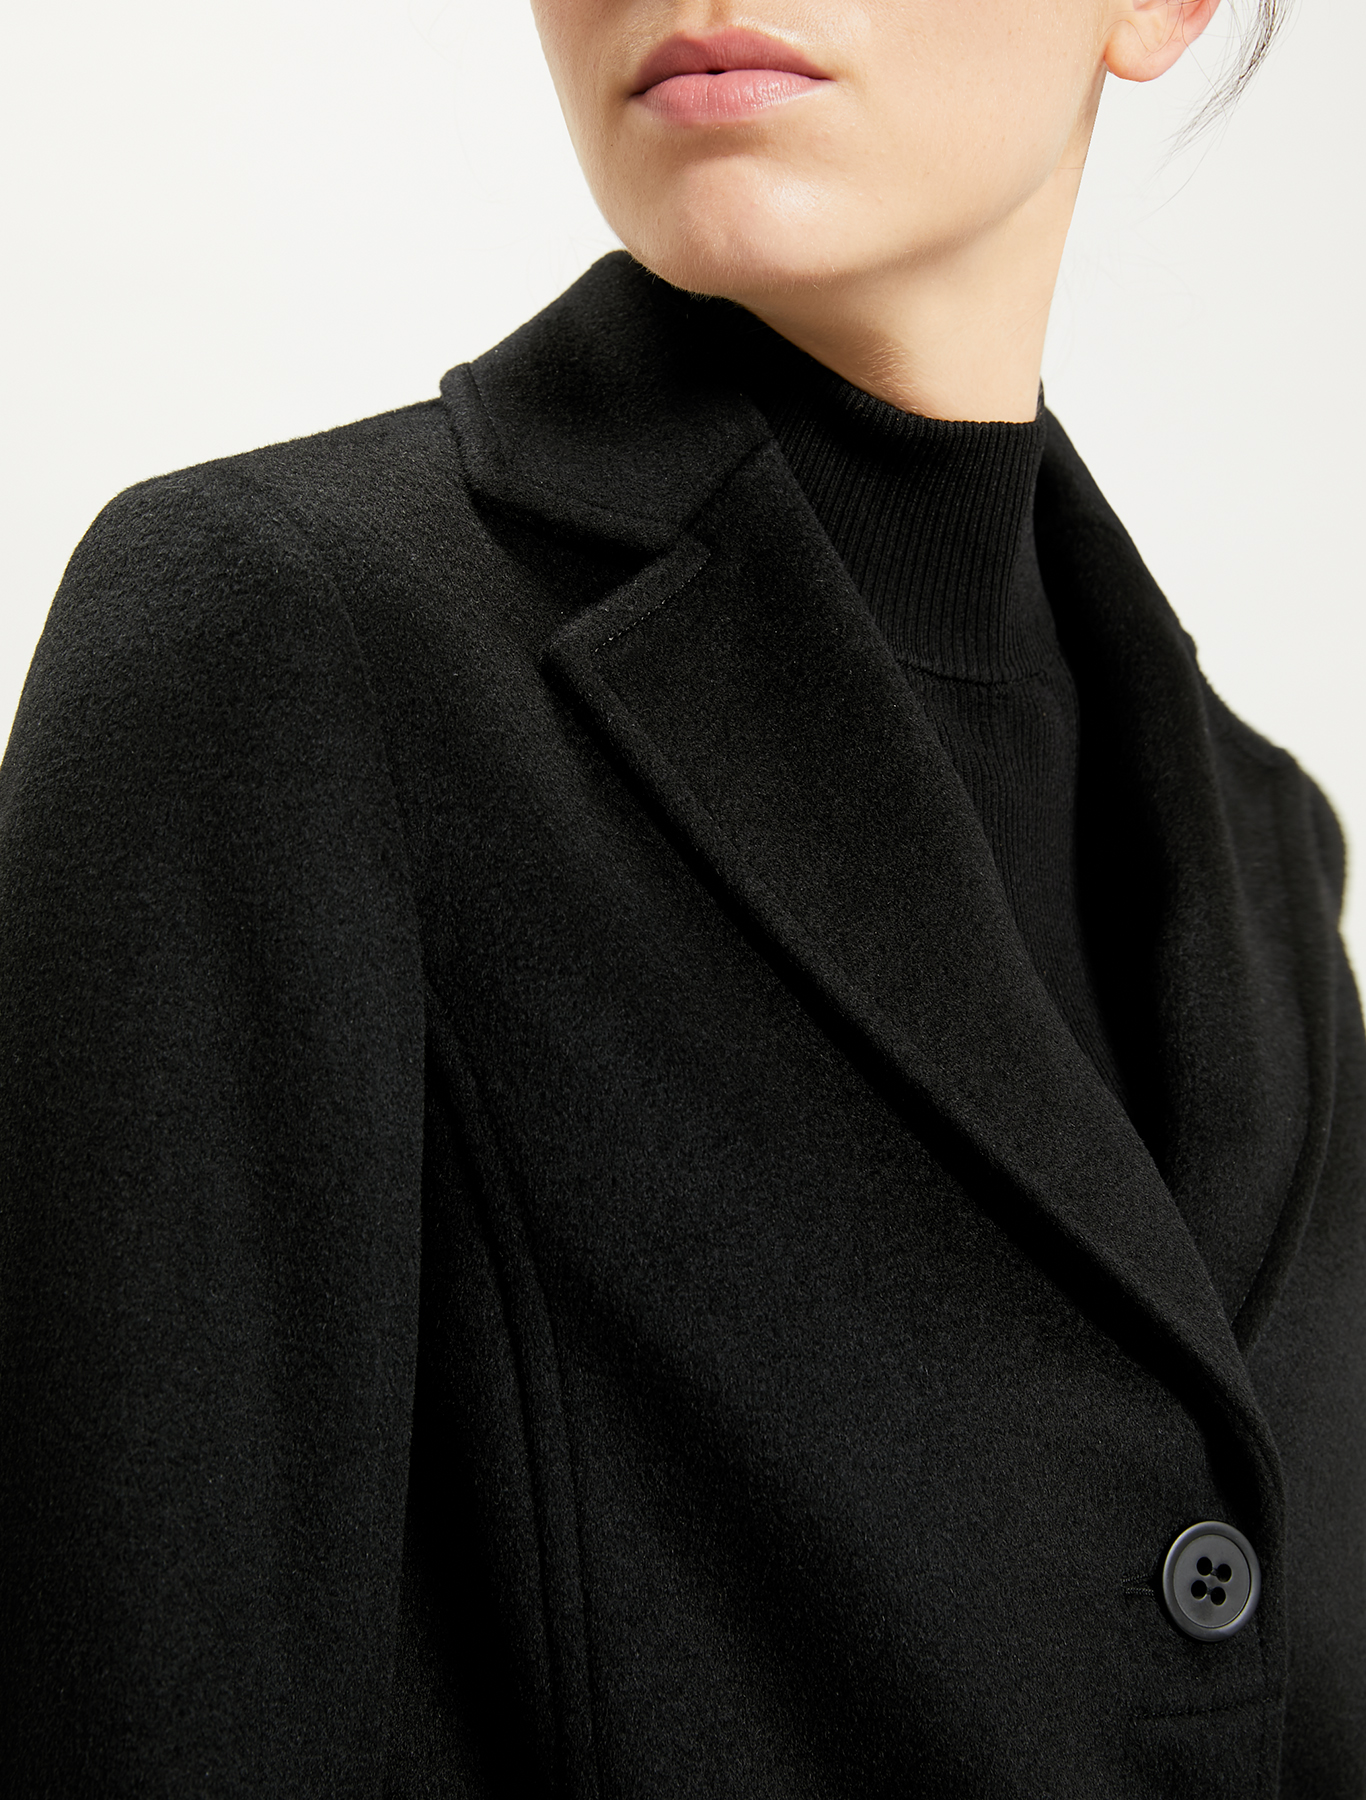 Pure wool coat - black - pennyblack